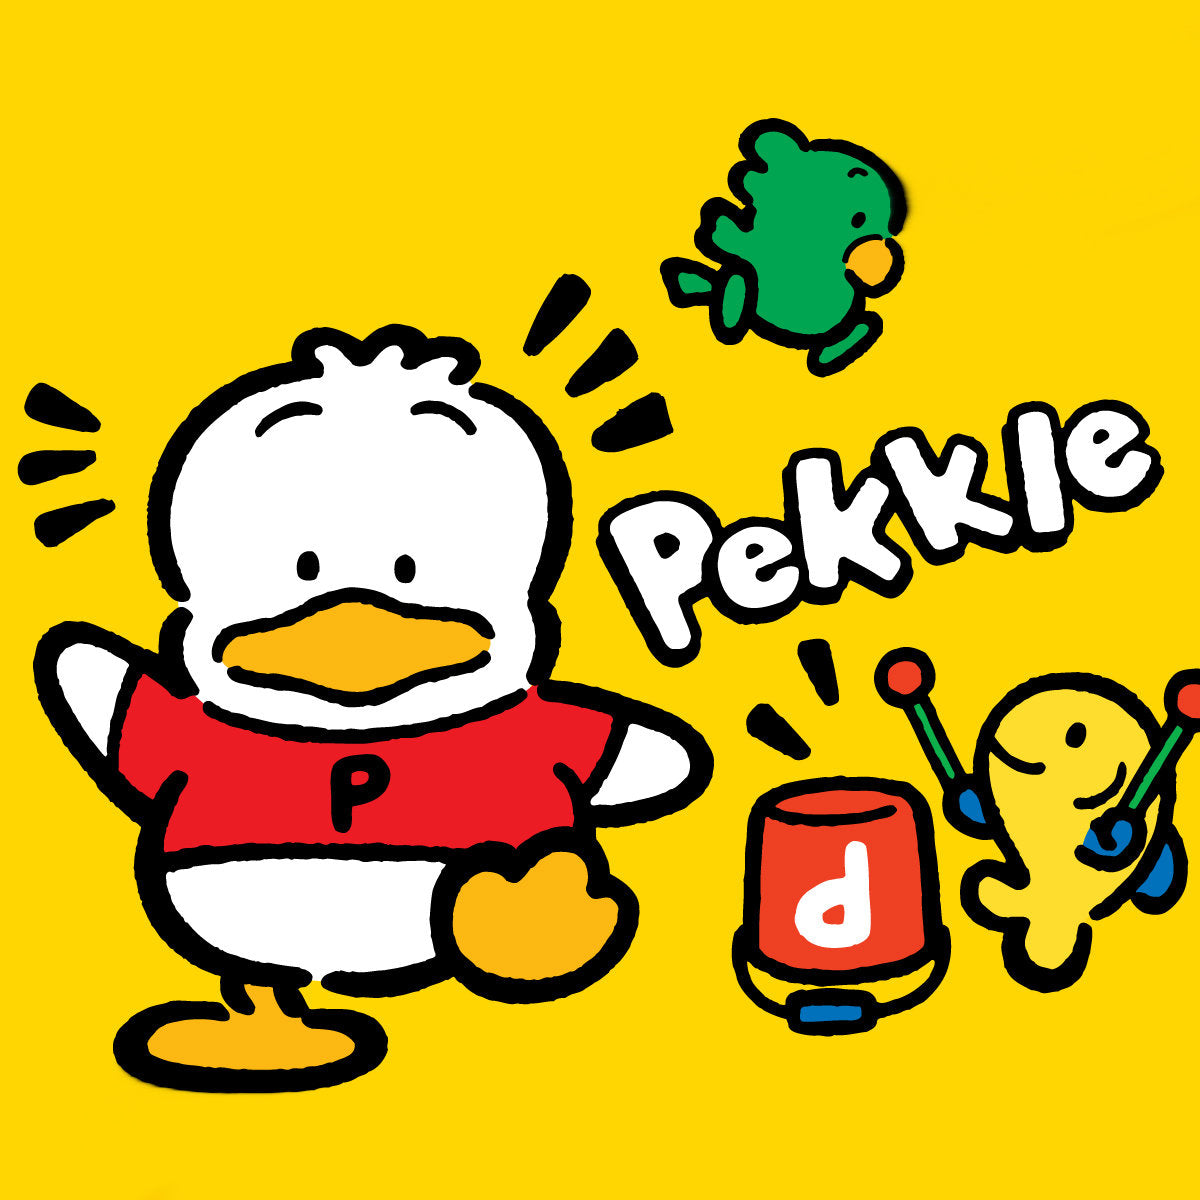 Sanrio Friend of the Month - Pekkle